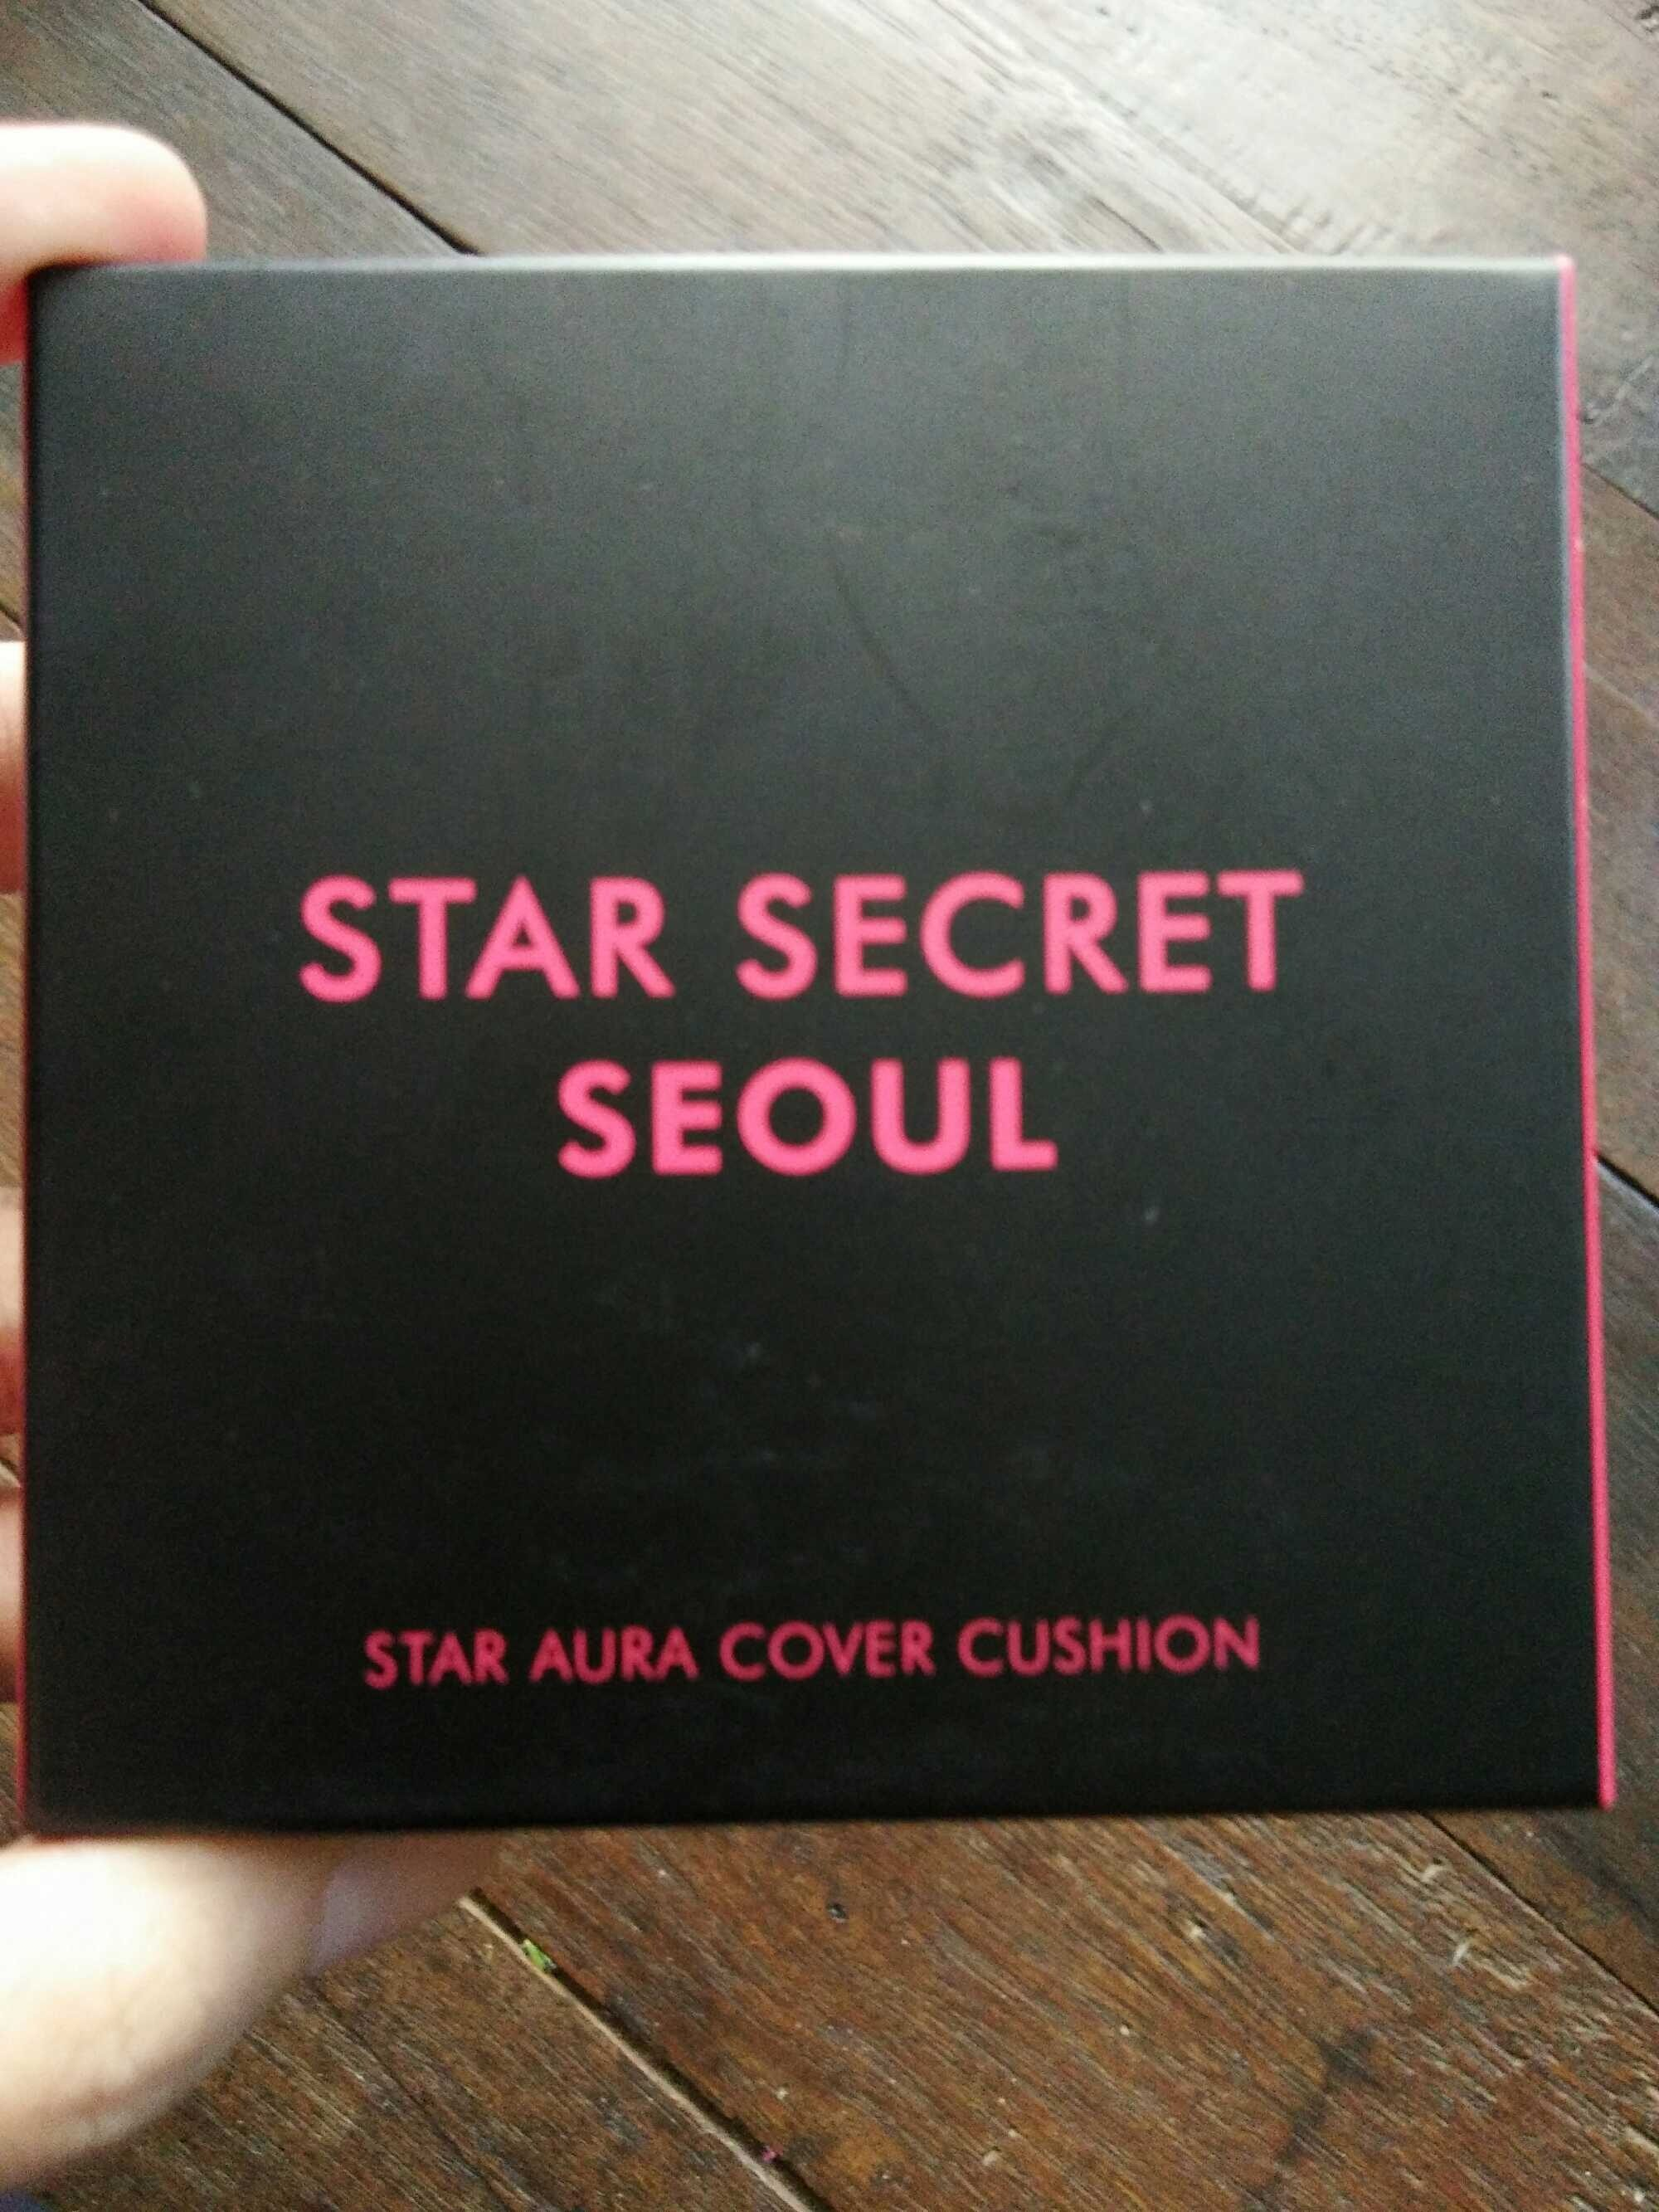 Star Aura Cover Cushion - Product